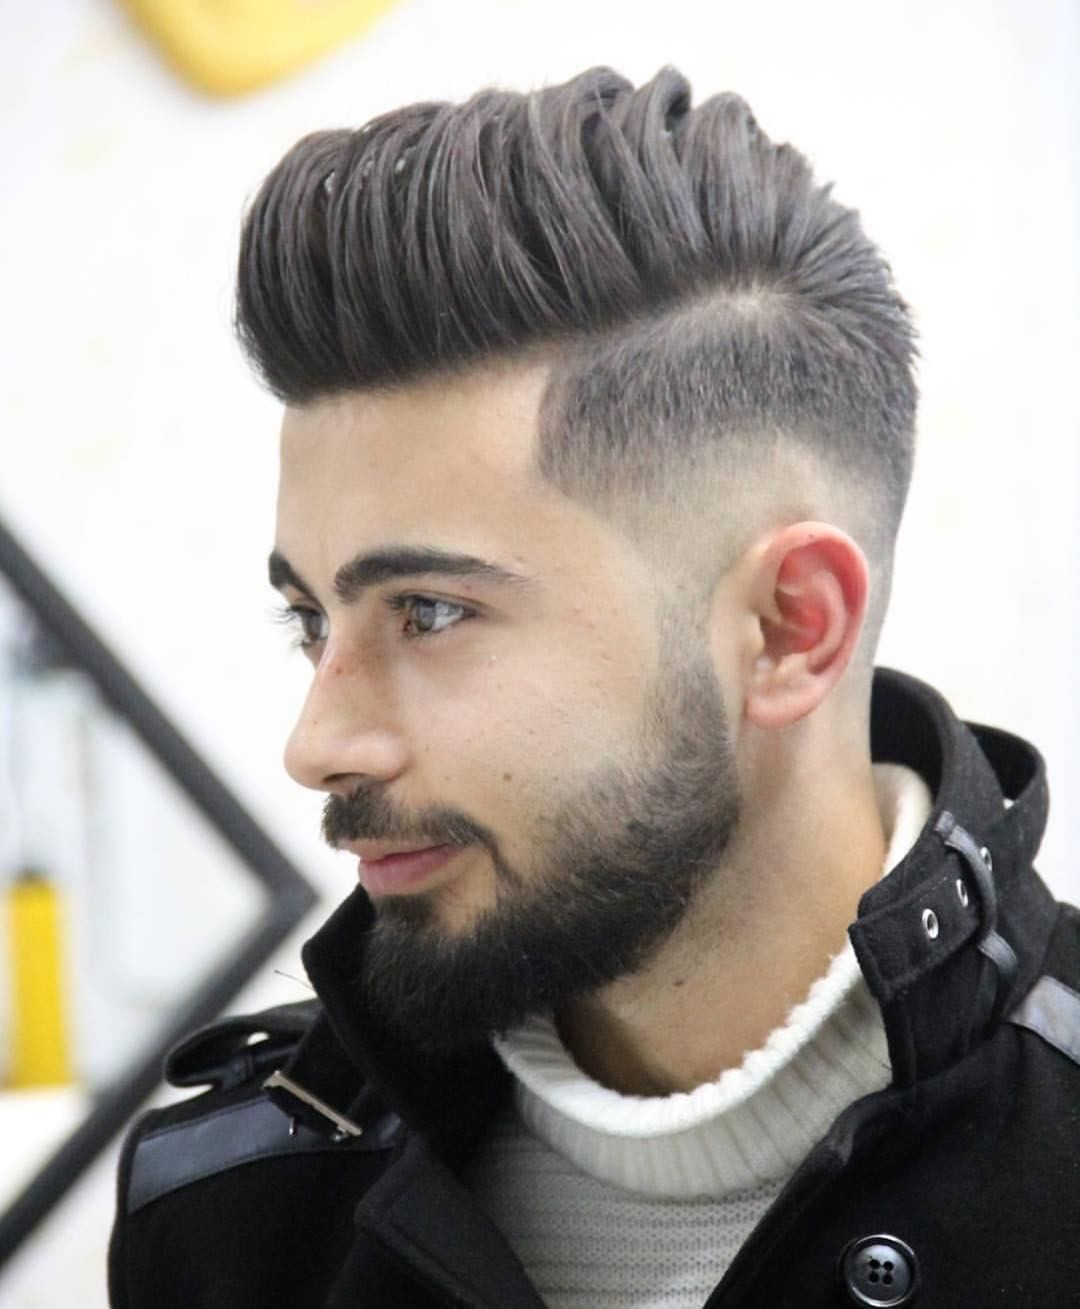 Hairstyles Trending In The First Quarter Of 2017 Is Not Much Different From Year 2016 Especially When New Men Hairstyles Mens Hairstyles Short Mens Hairstyles